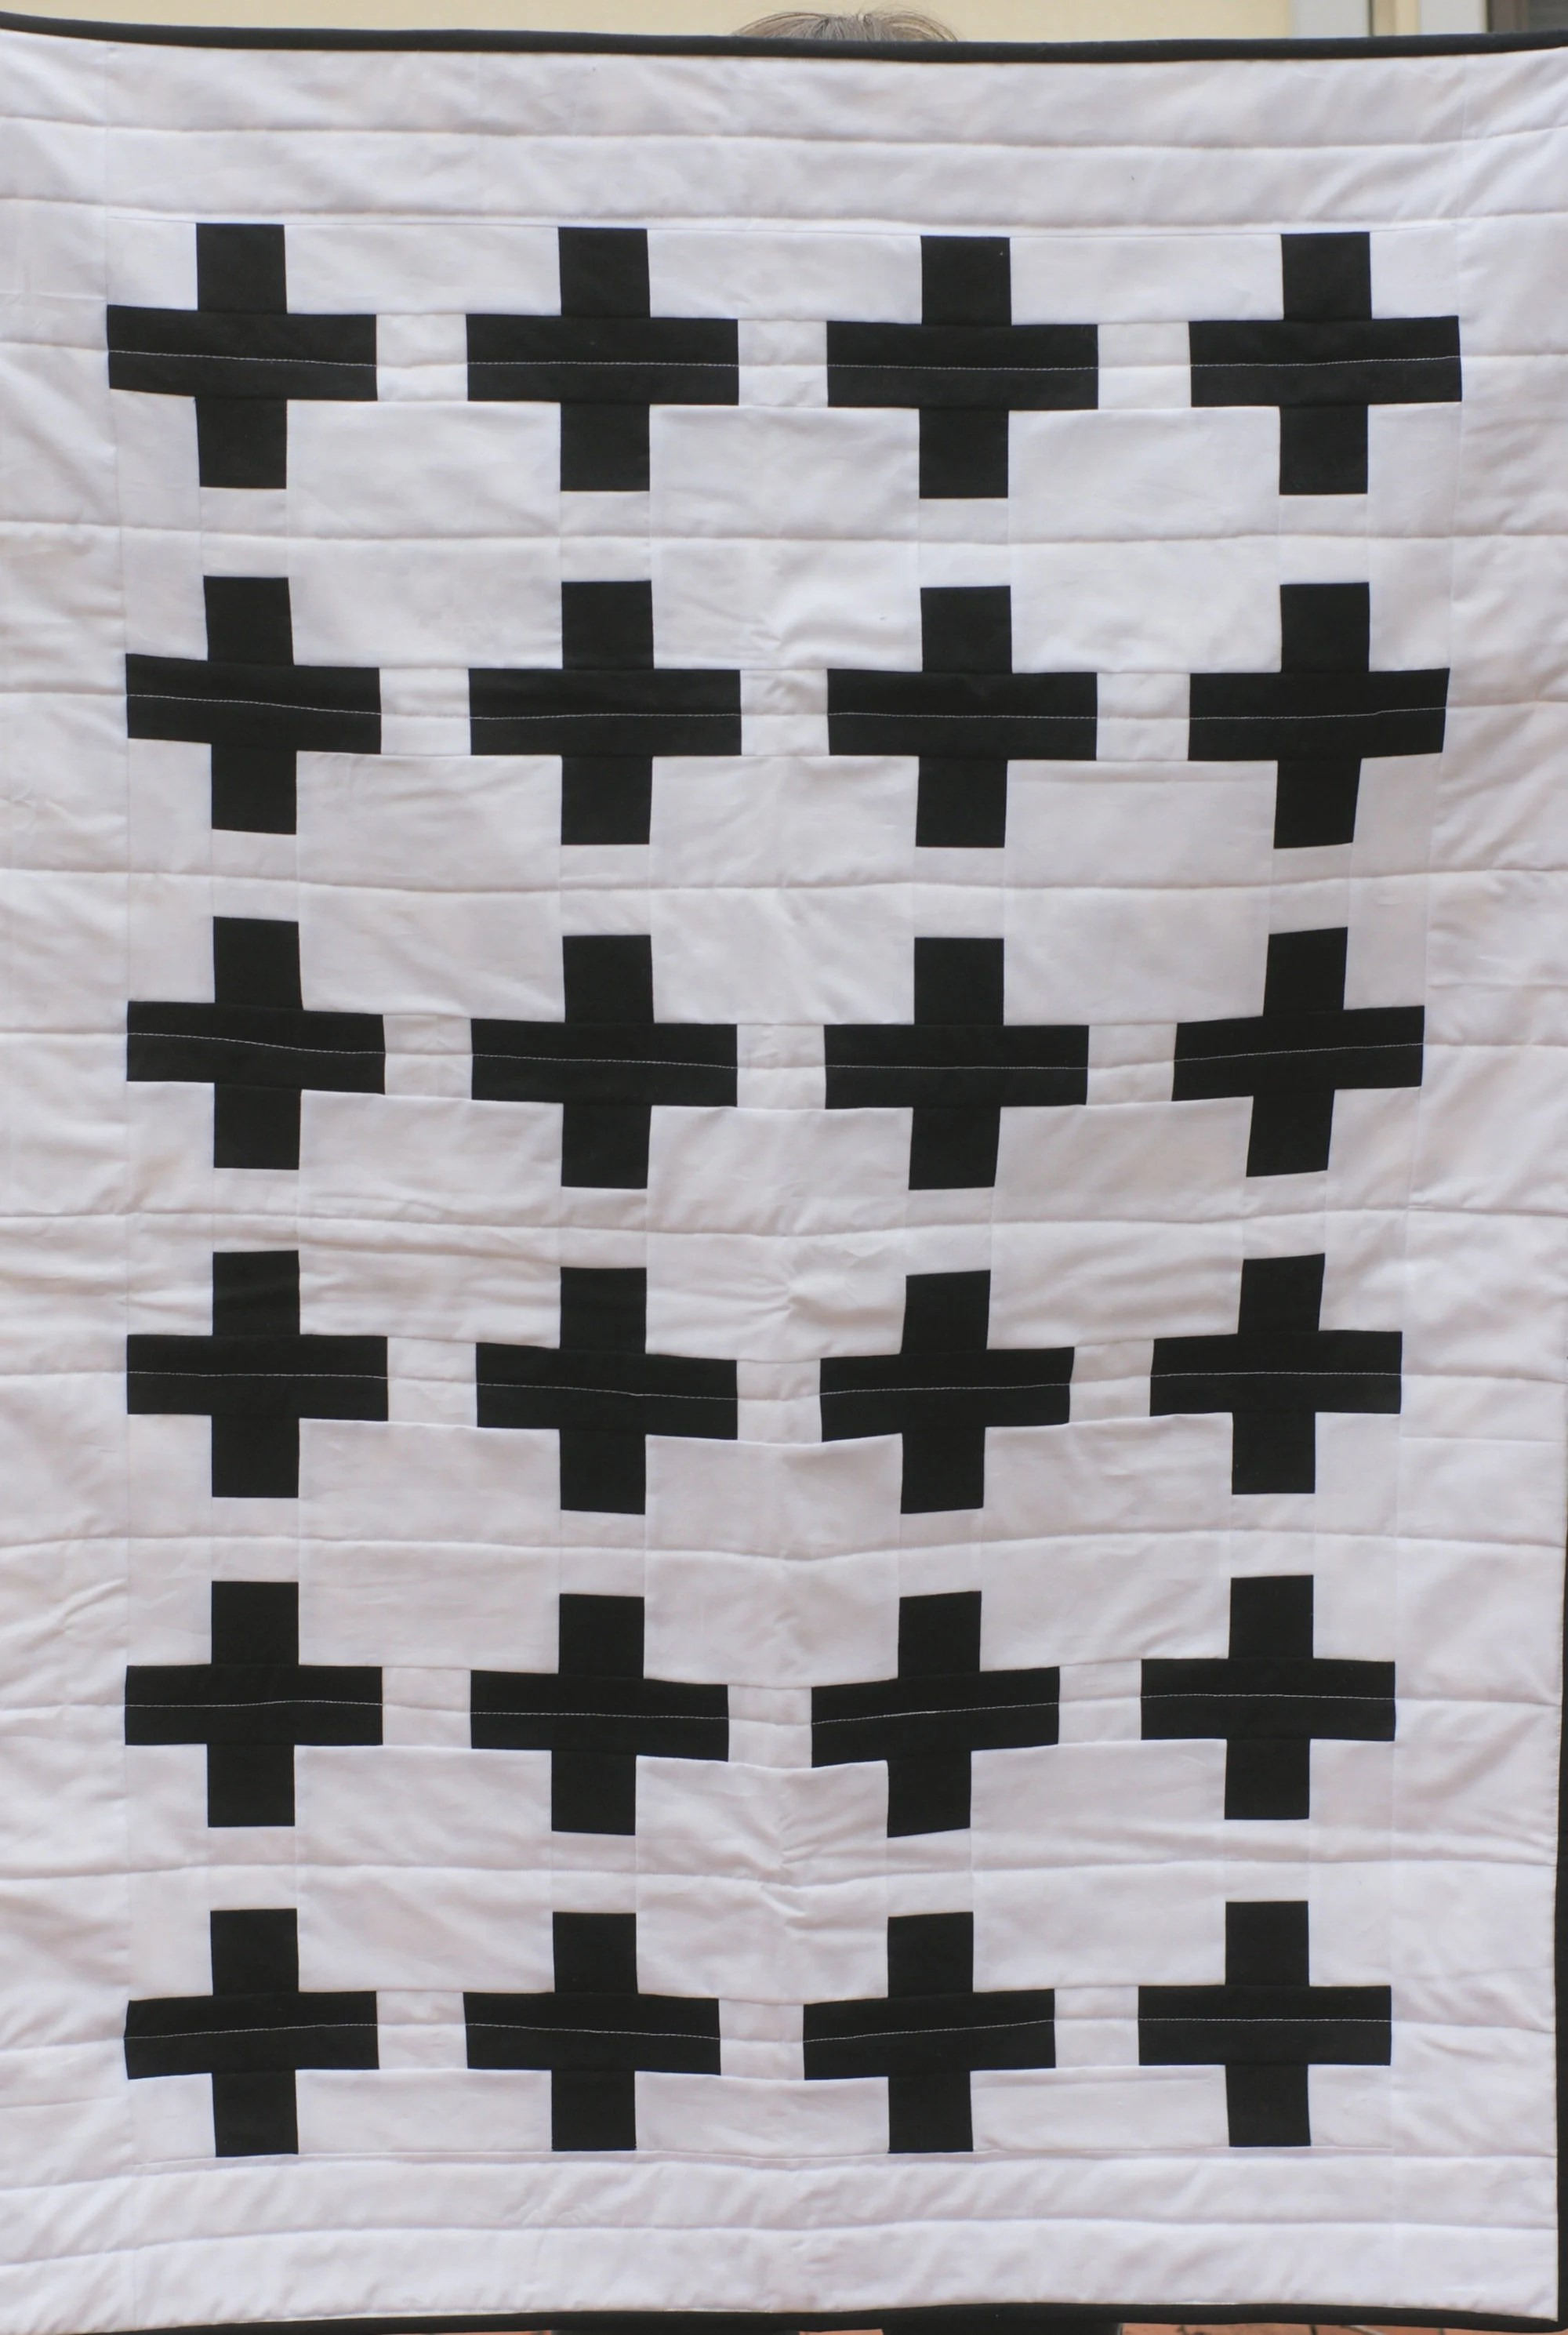 13 QUILTS - BLACK & WHITE ideas | quilts, optical illusion quilts...